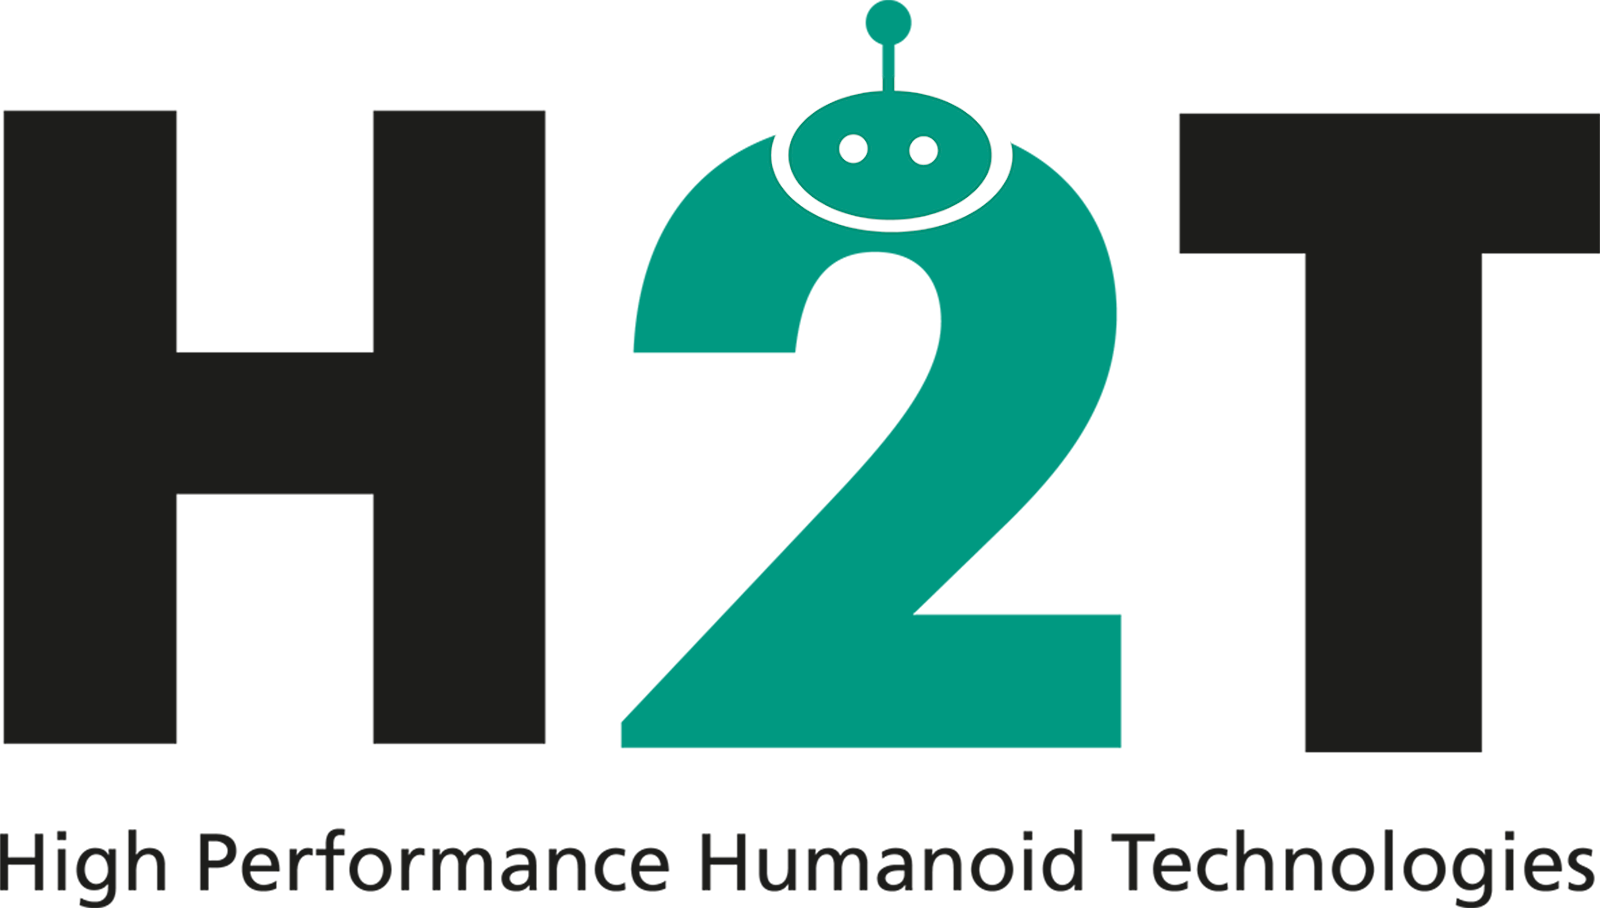 Image Institute of Anthropomatics and Robotics - High Performance Humanoid Technologies Lab (IAR H2T)